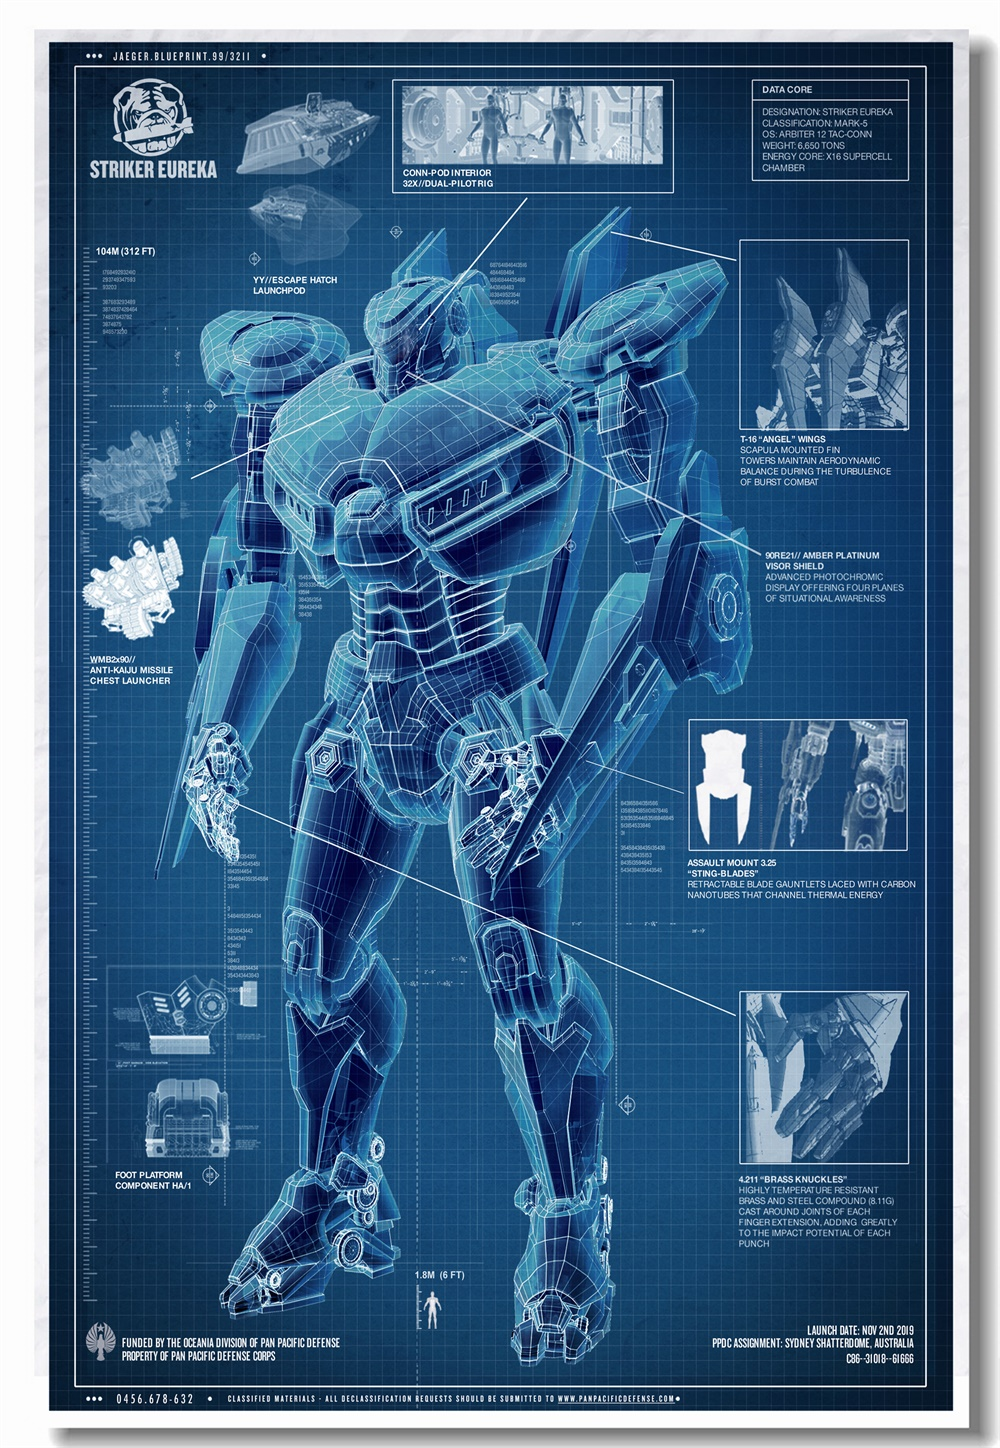 custom canvas wall art pacific rim uprising poster striker